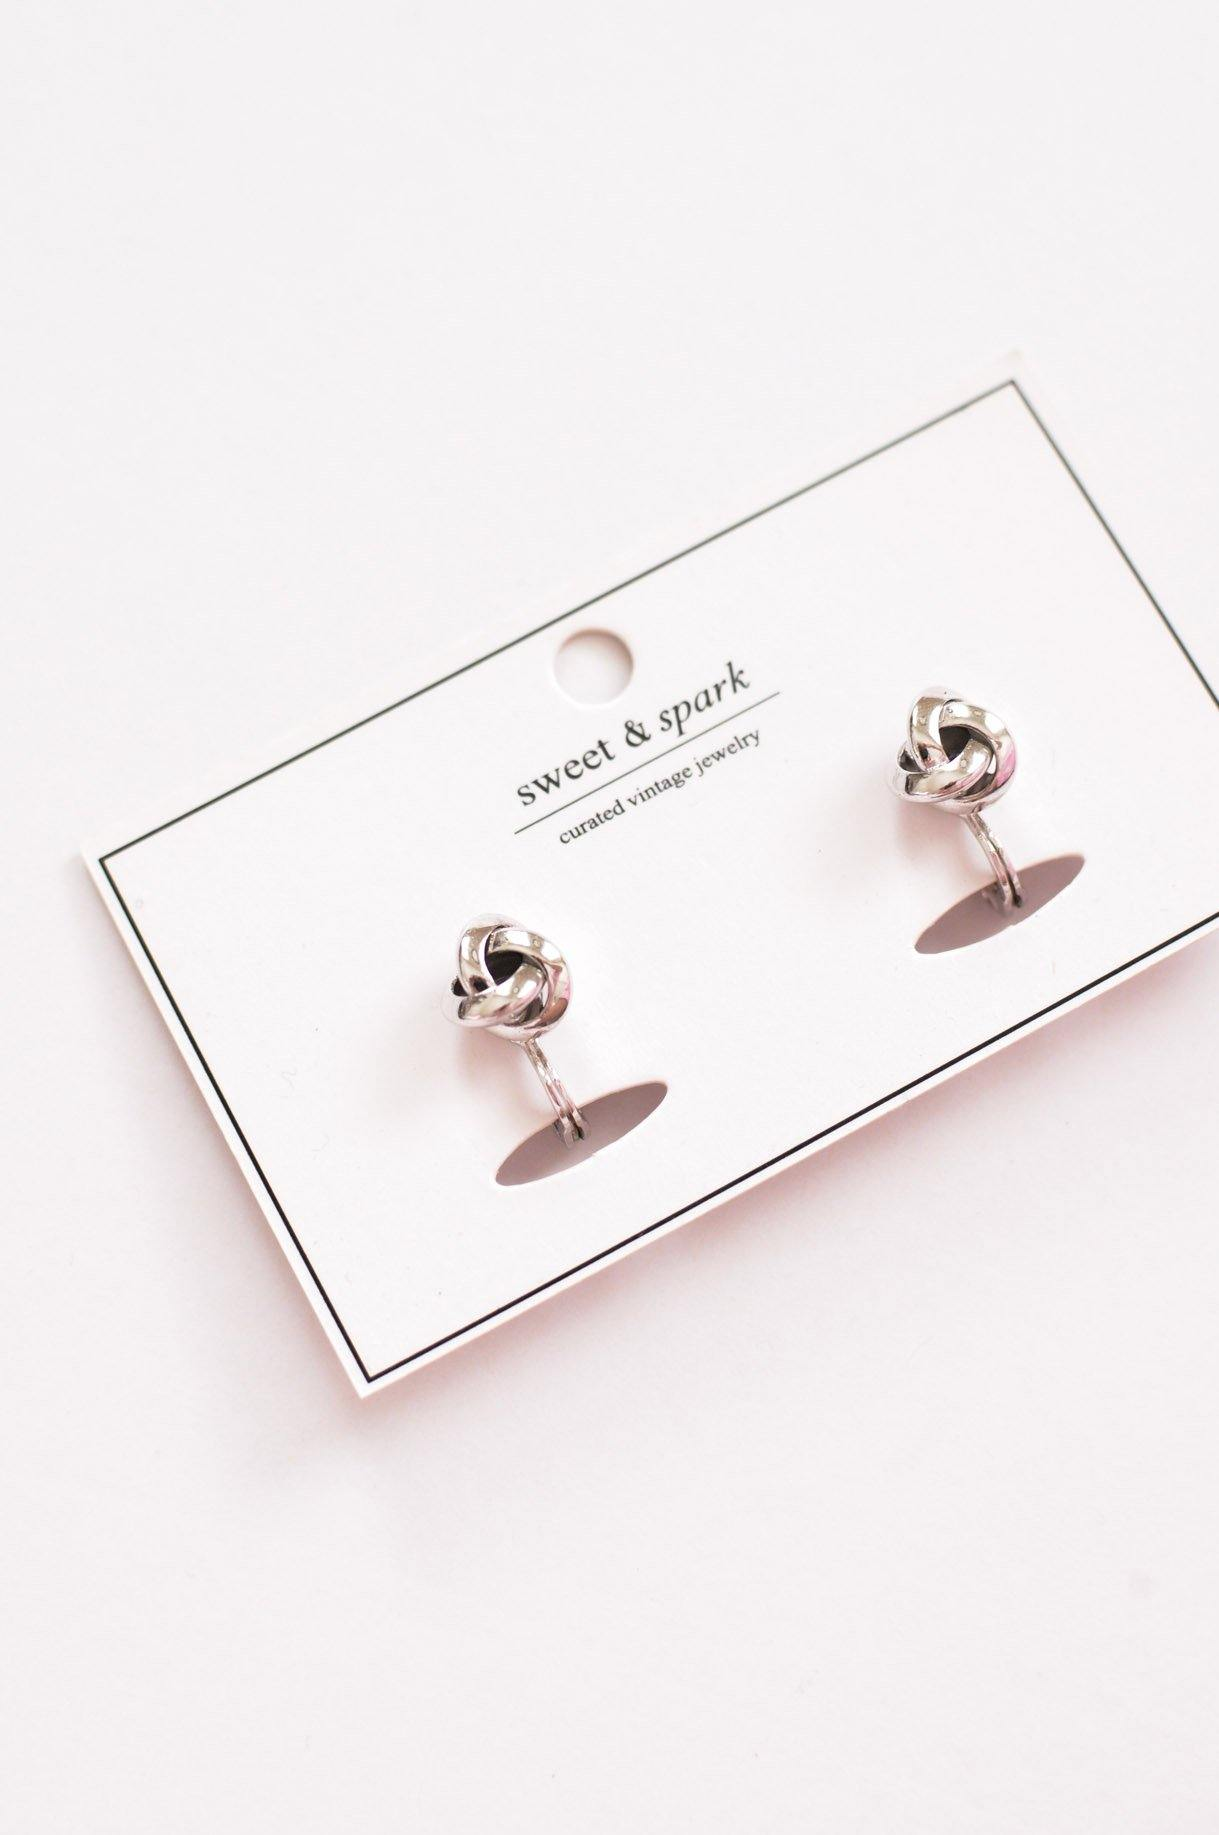 Silver Love Knot Clip-on Earrings - Sweet & Spark